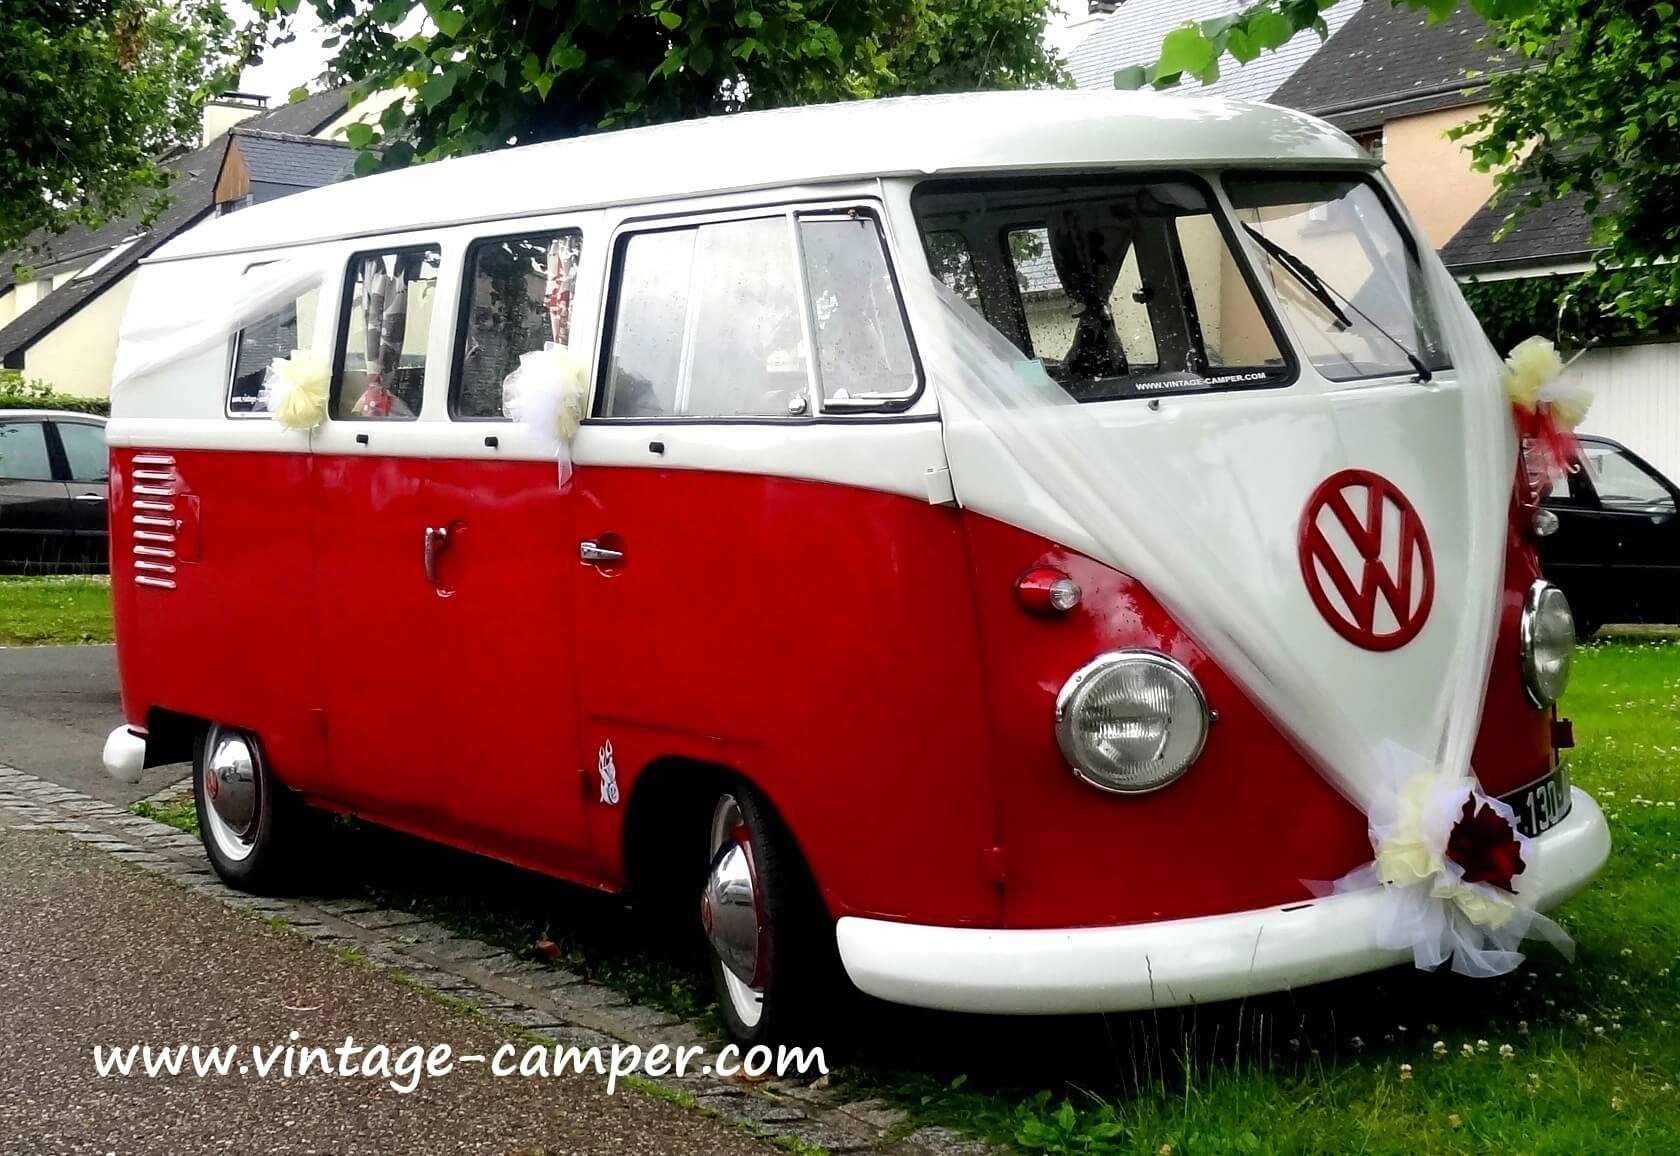 Granpa surfer vintage camper for T1 bordeaux location